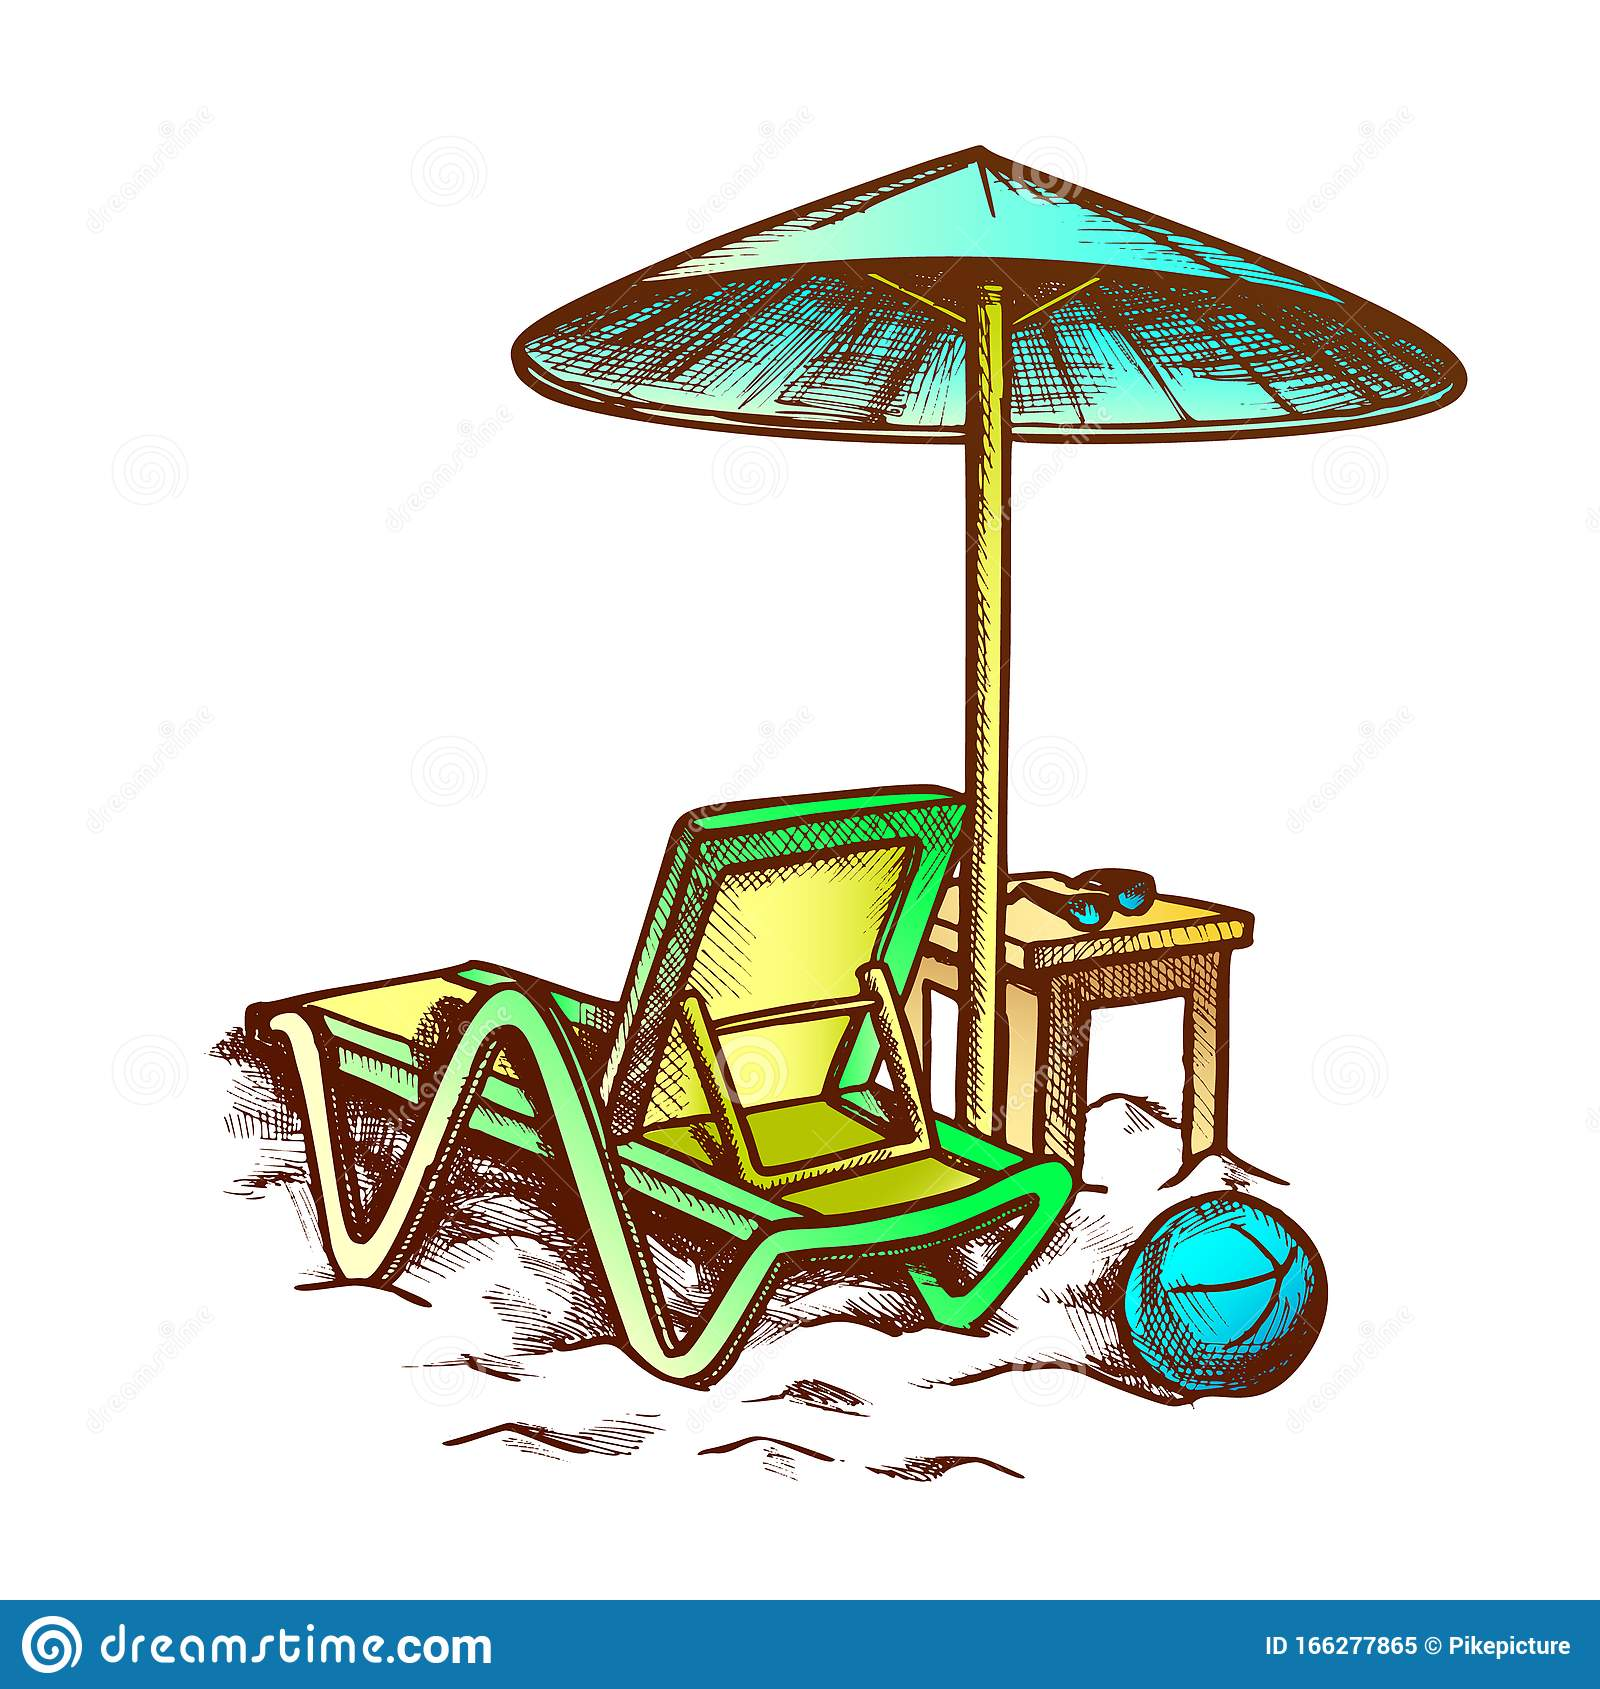 Beach Chair With Umbrella And Stool Retro Vector Stock Vector Illustration Of Outline Retro 166277865